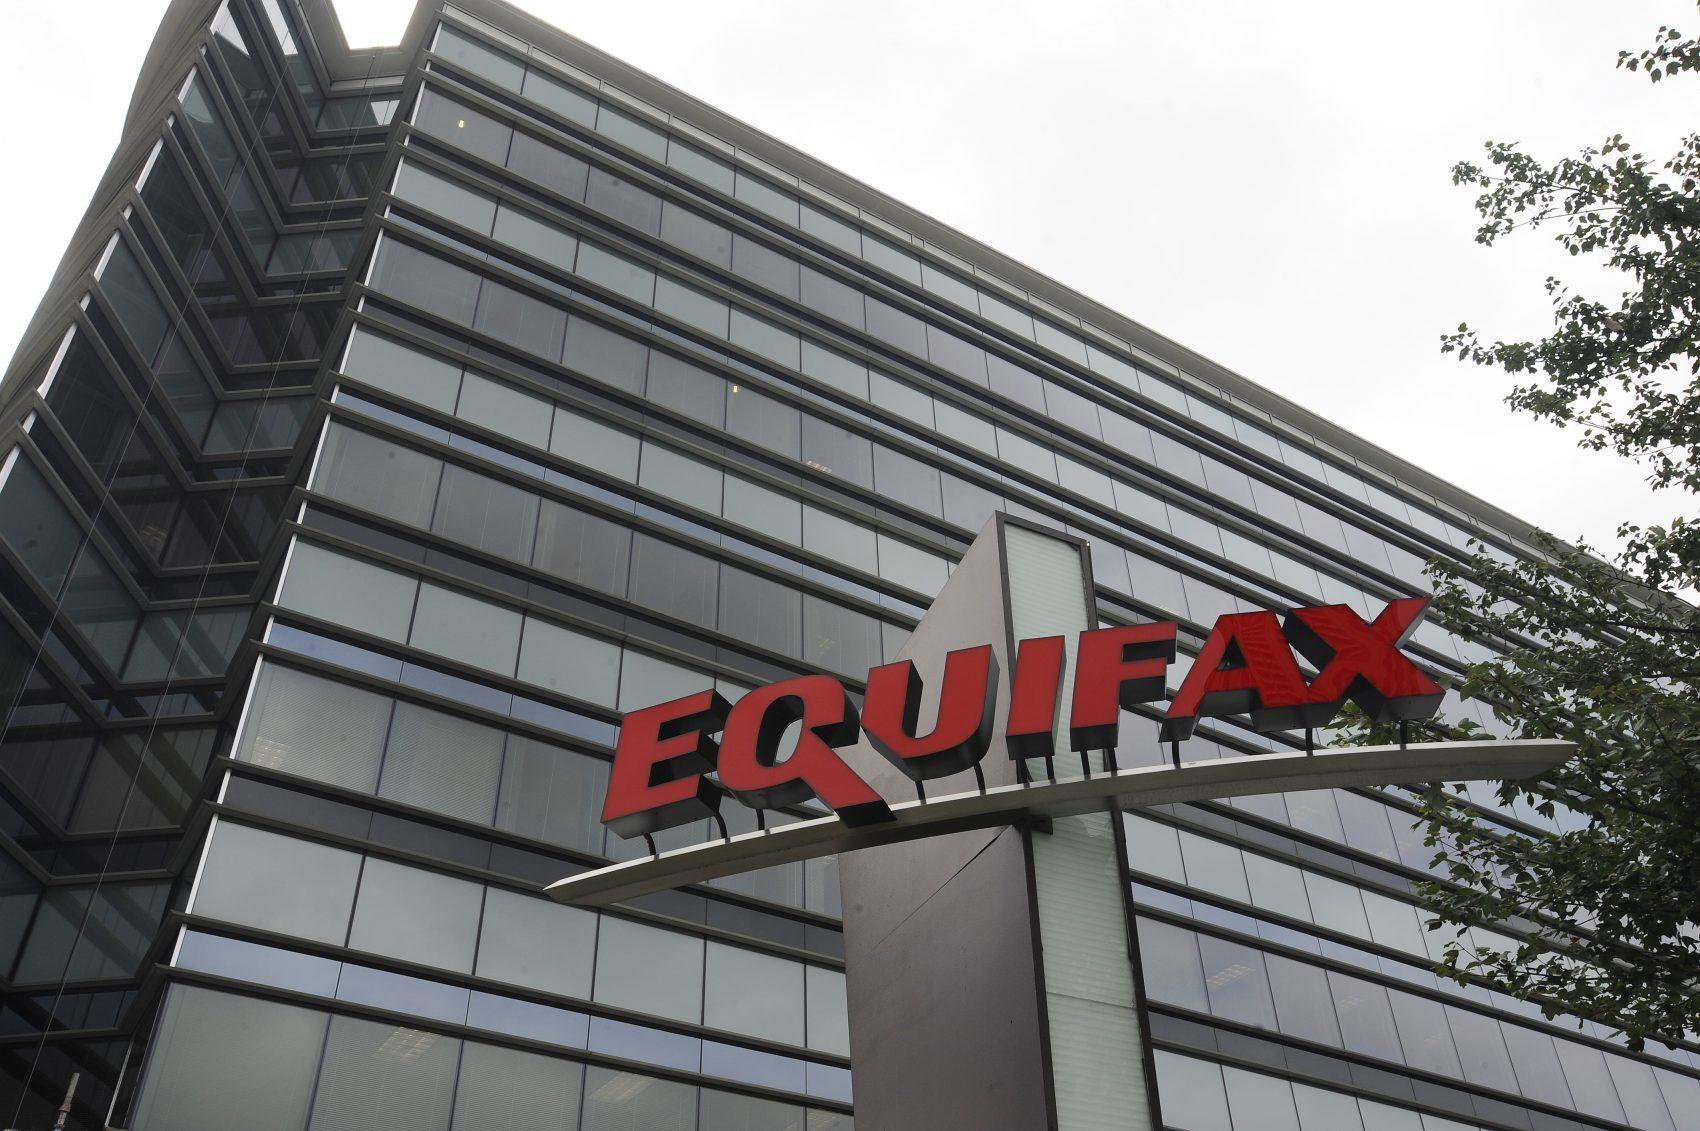 Equifax Breach: Three Takeaways in First Four Days